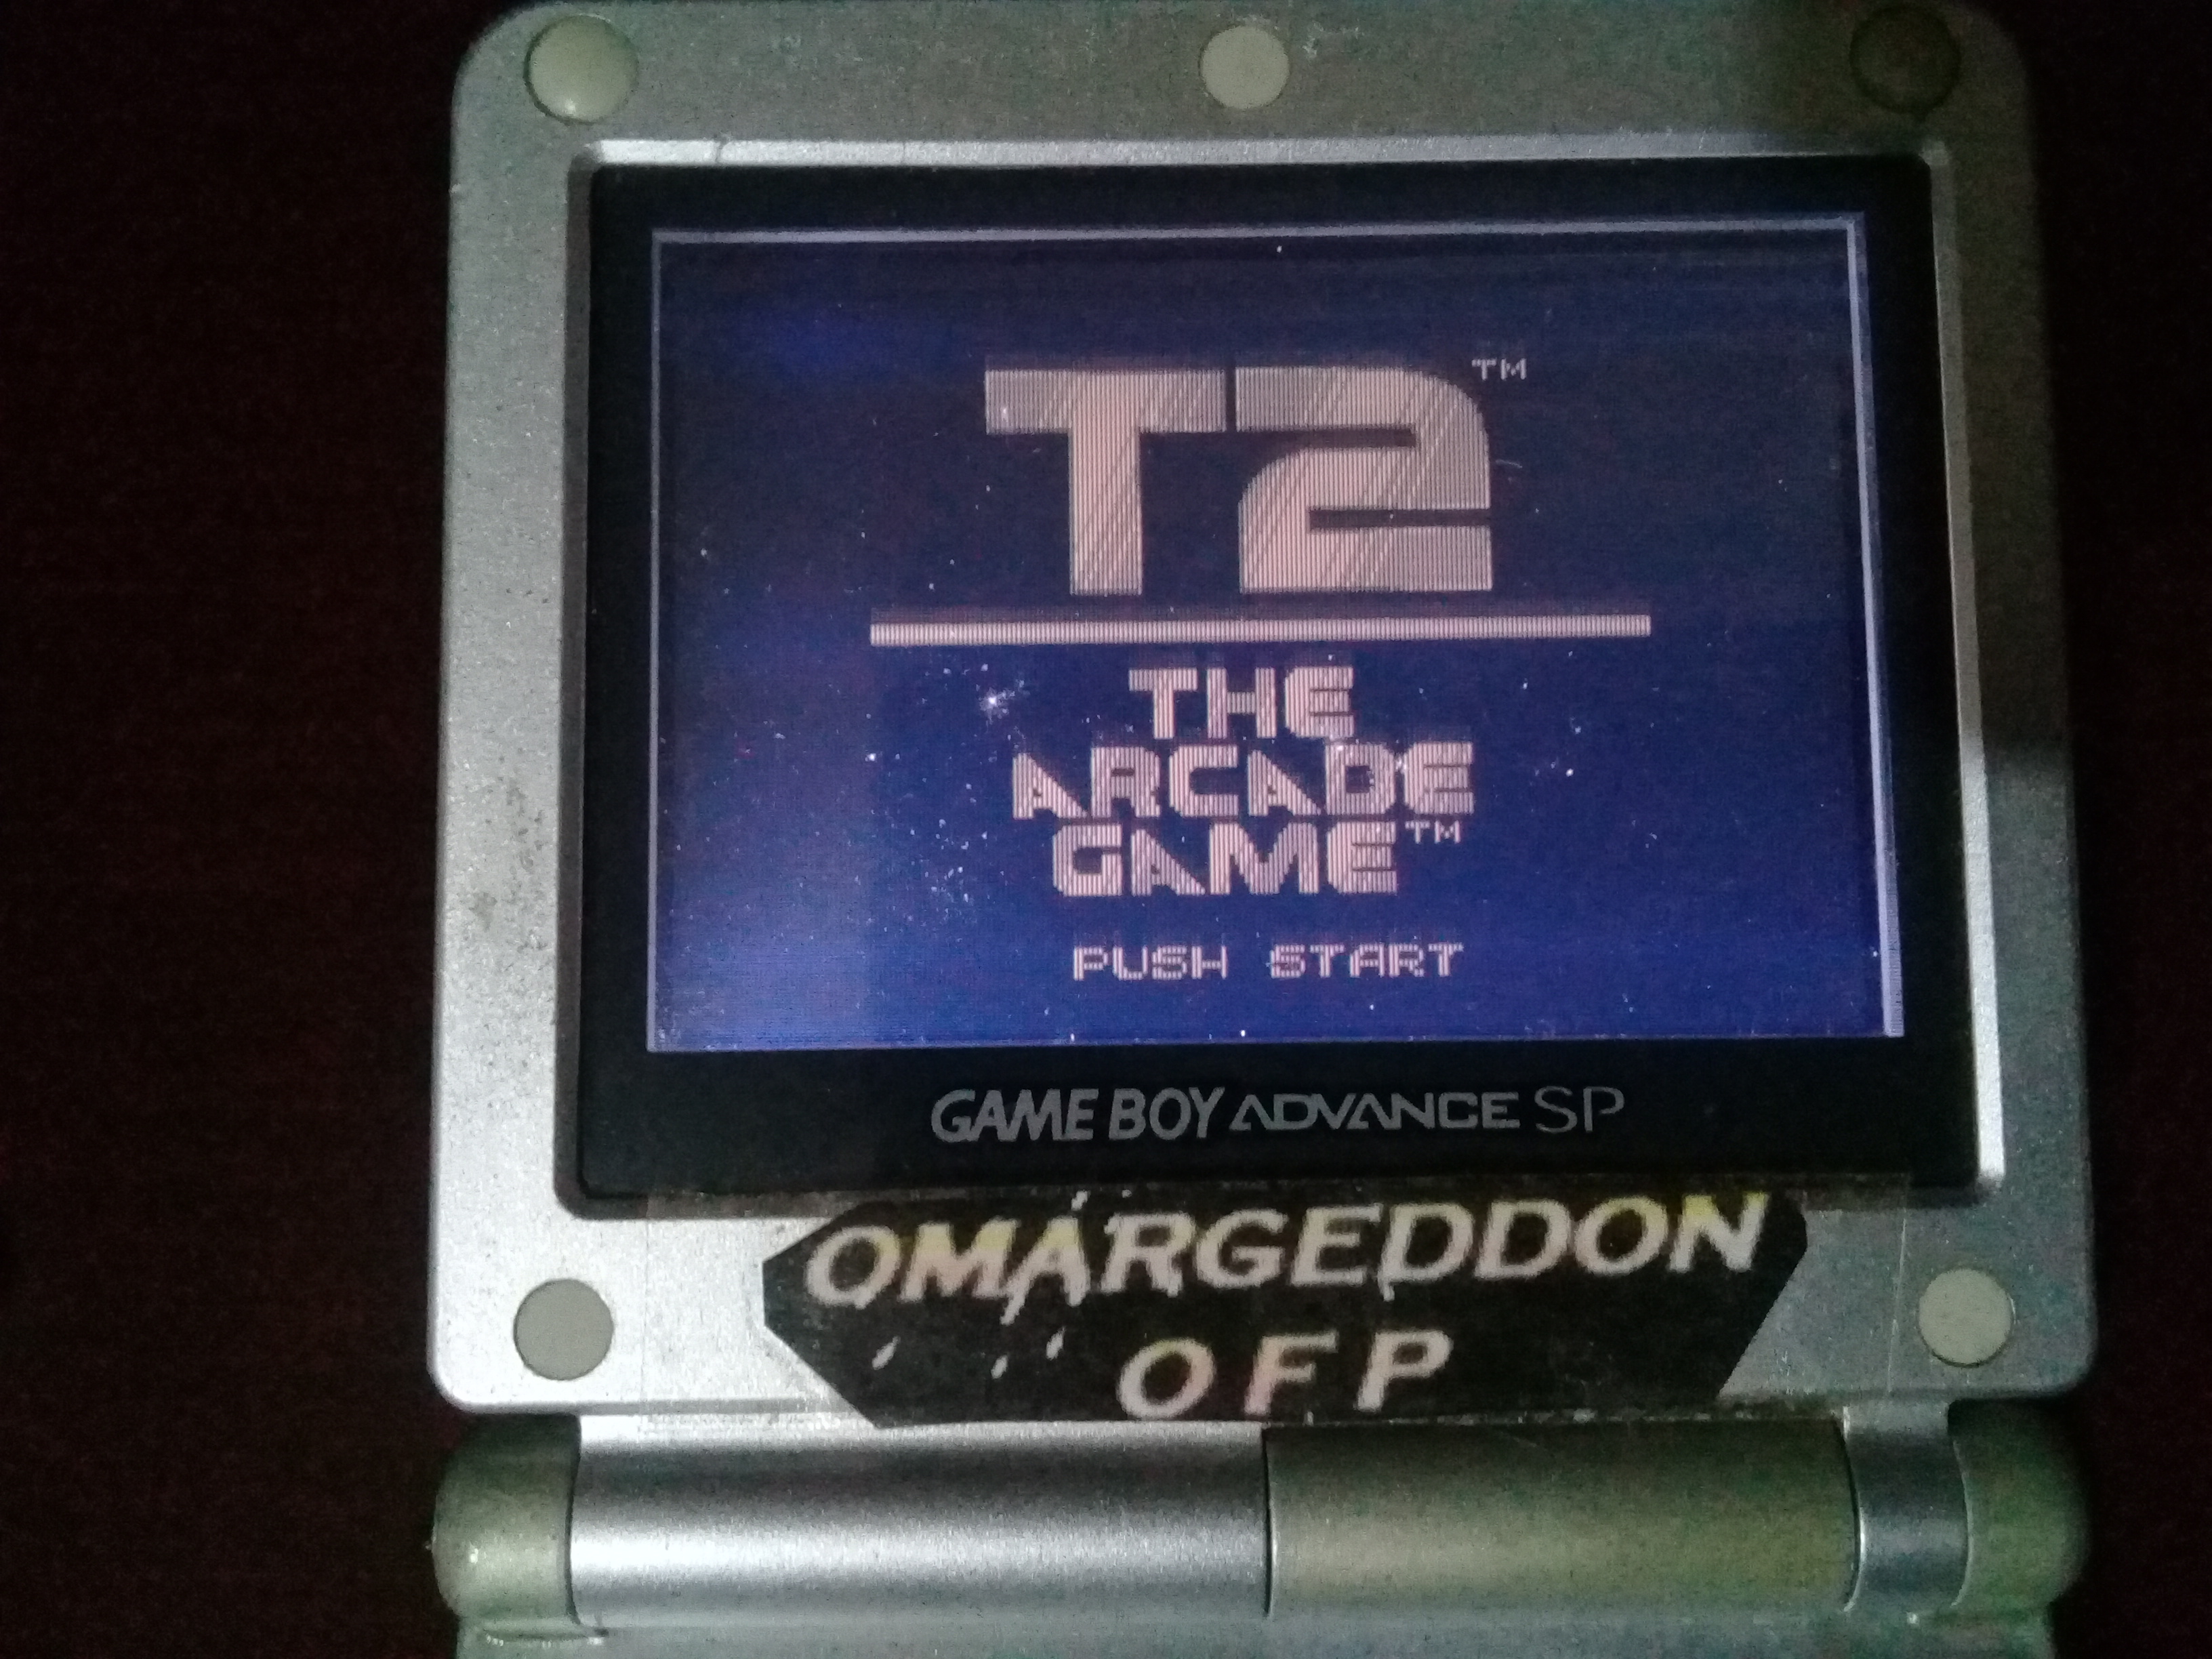 omargeddon: T2: The Arcade Game (Game Boy) 149,080 points on 2020-05-31 19:50:41